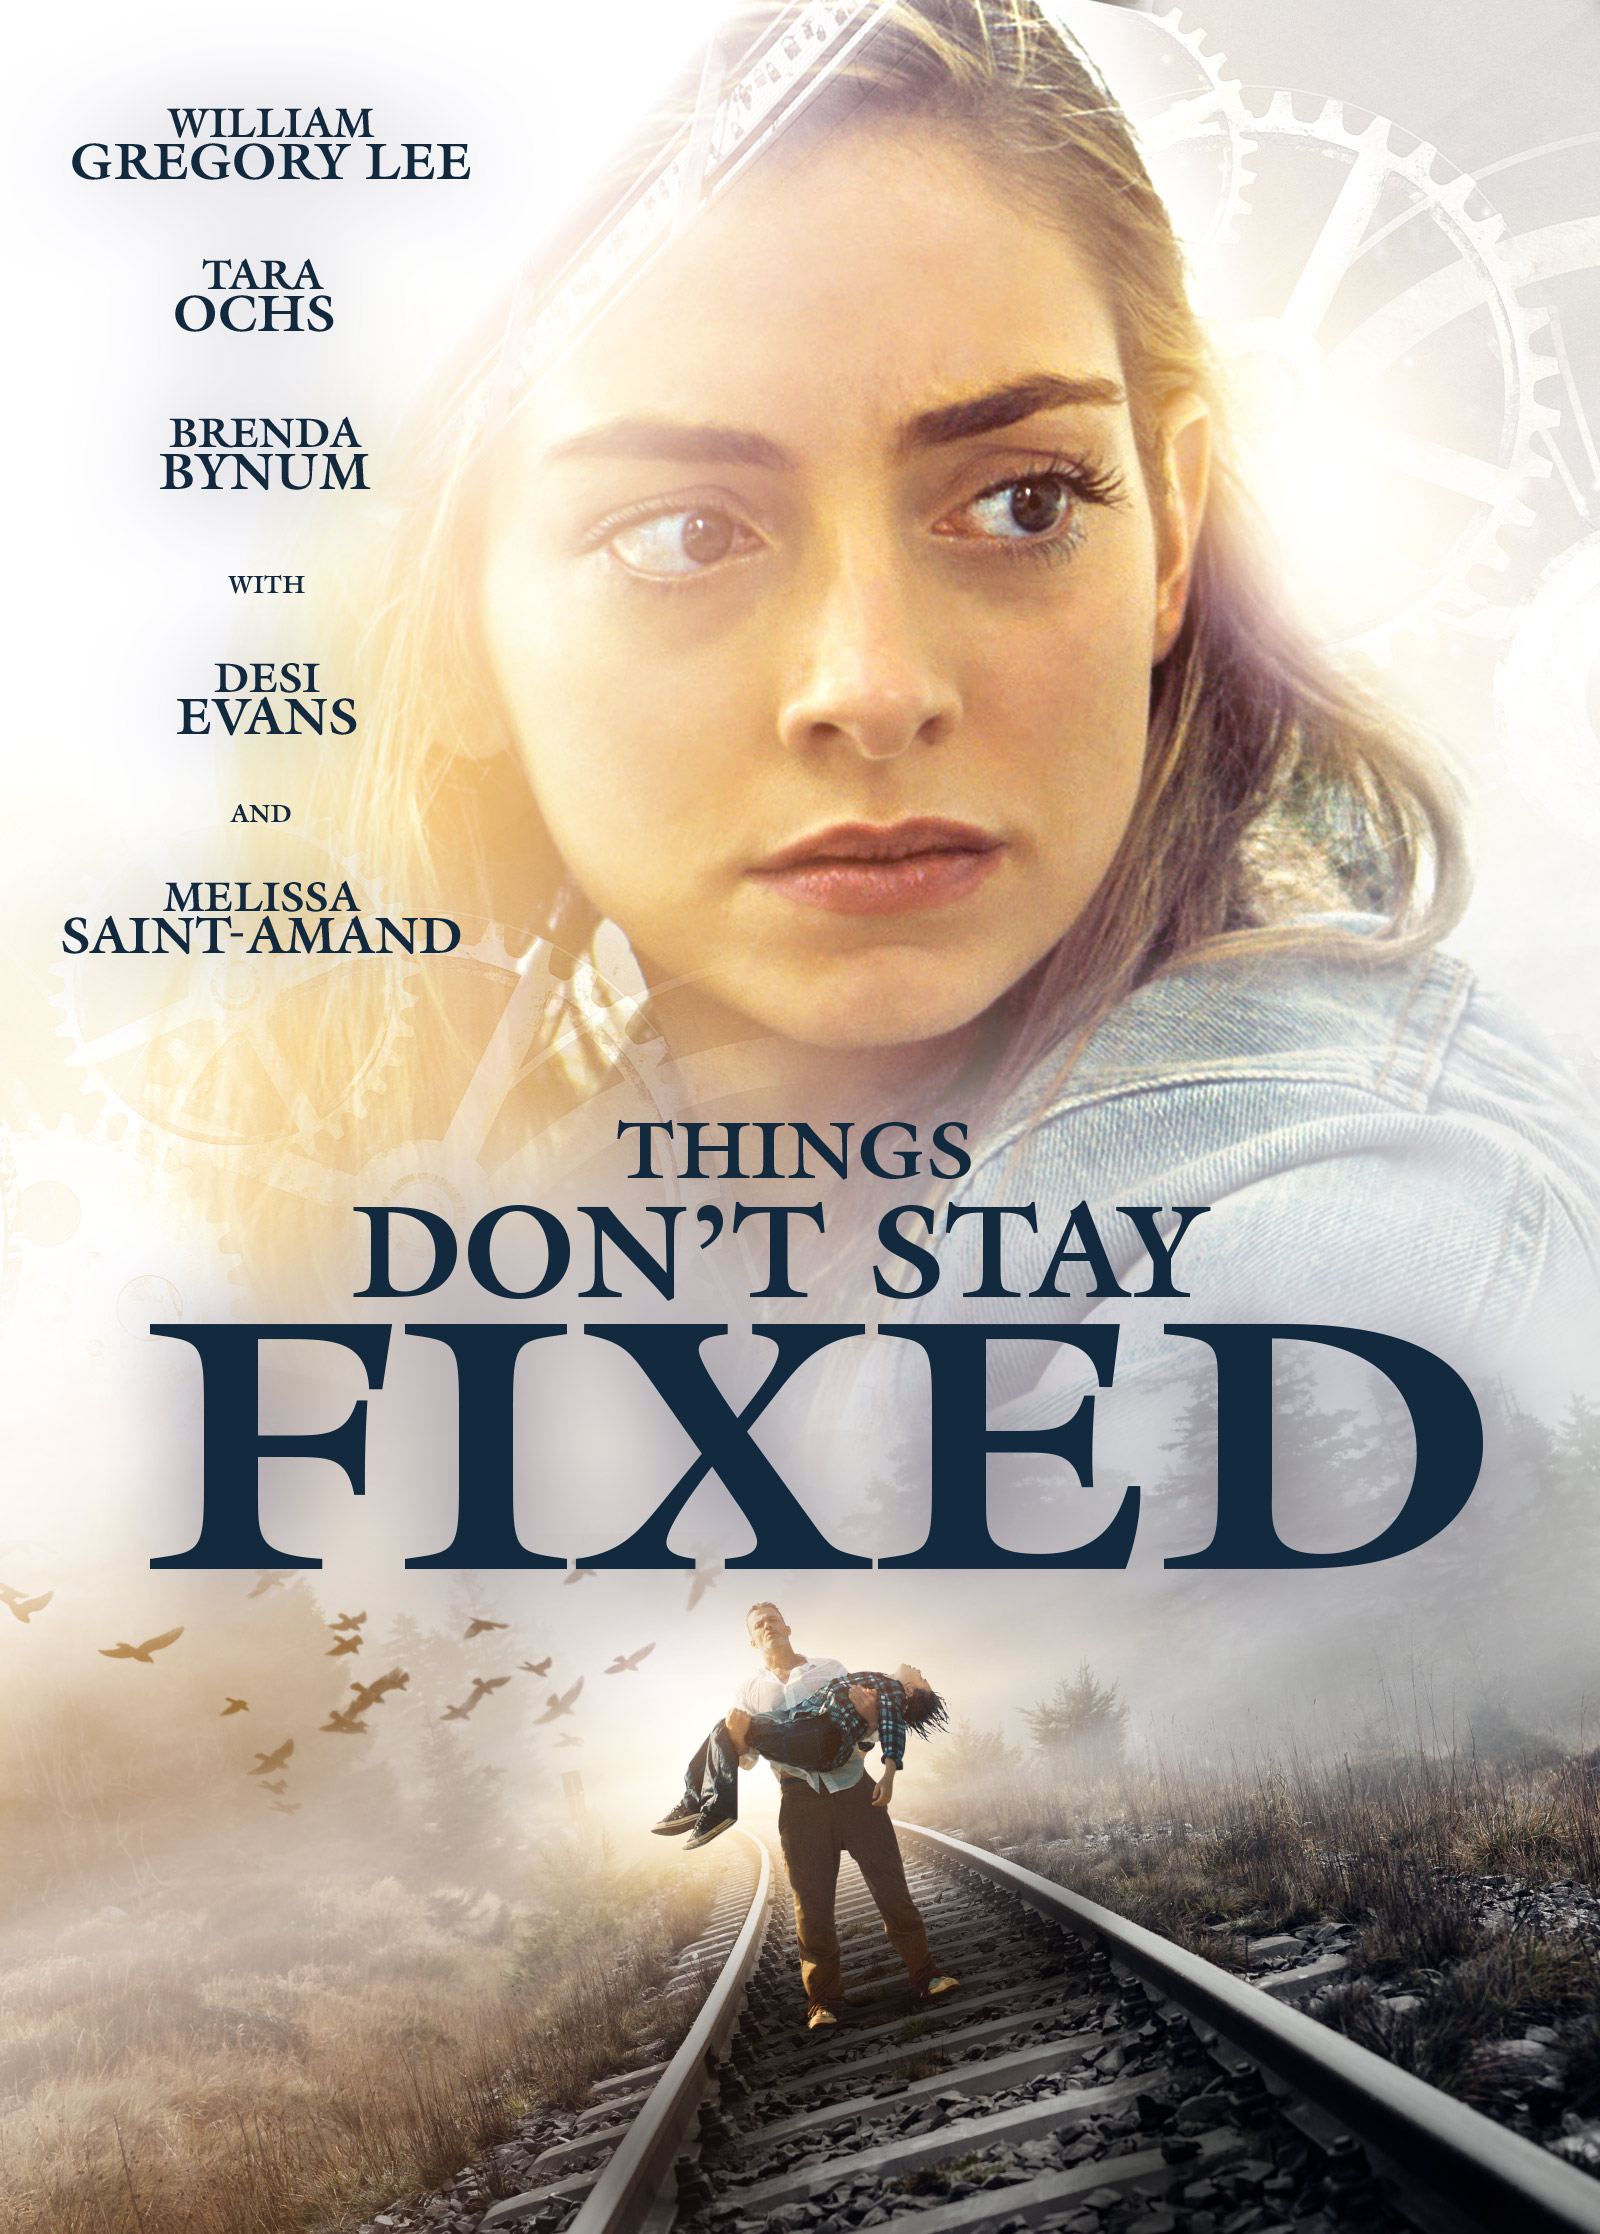 Things Dont Stay Fixed (2021) WebRip 720p Dual Audio [Hindi (Voice Over) Dubbed + English] [Full Movie]